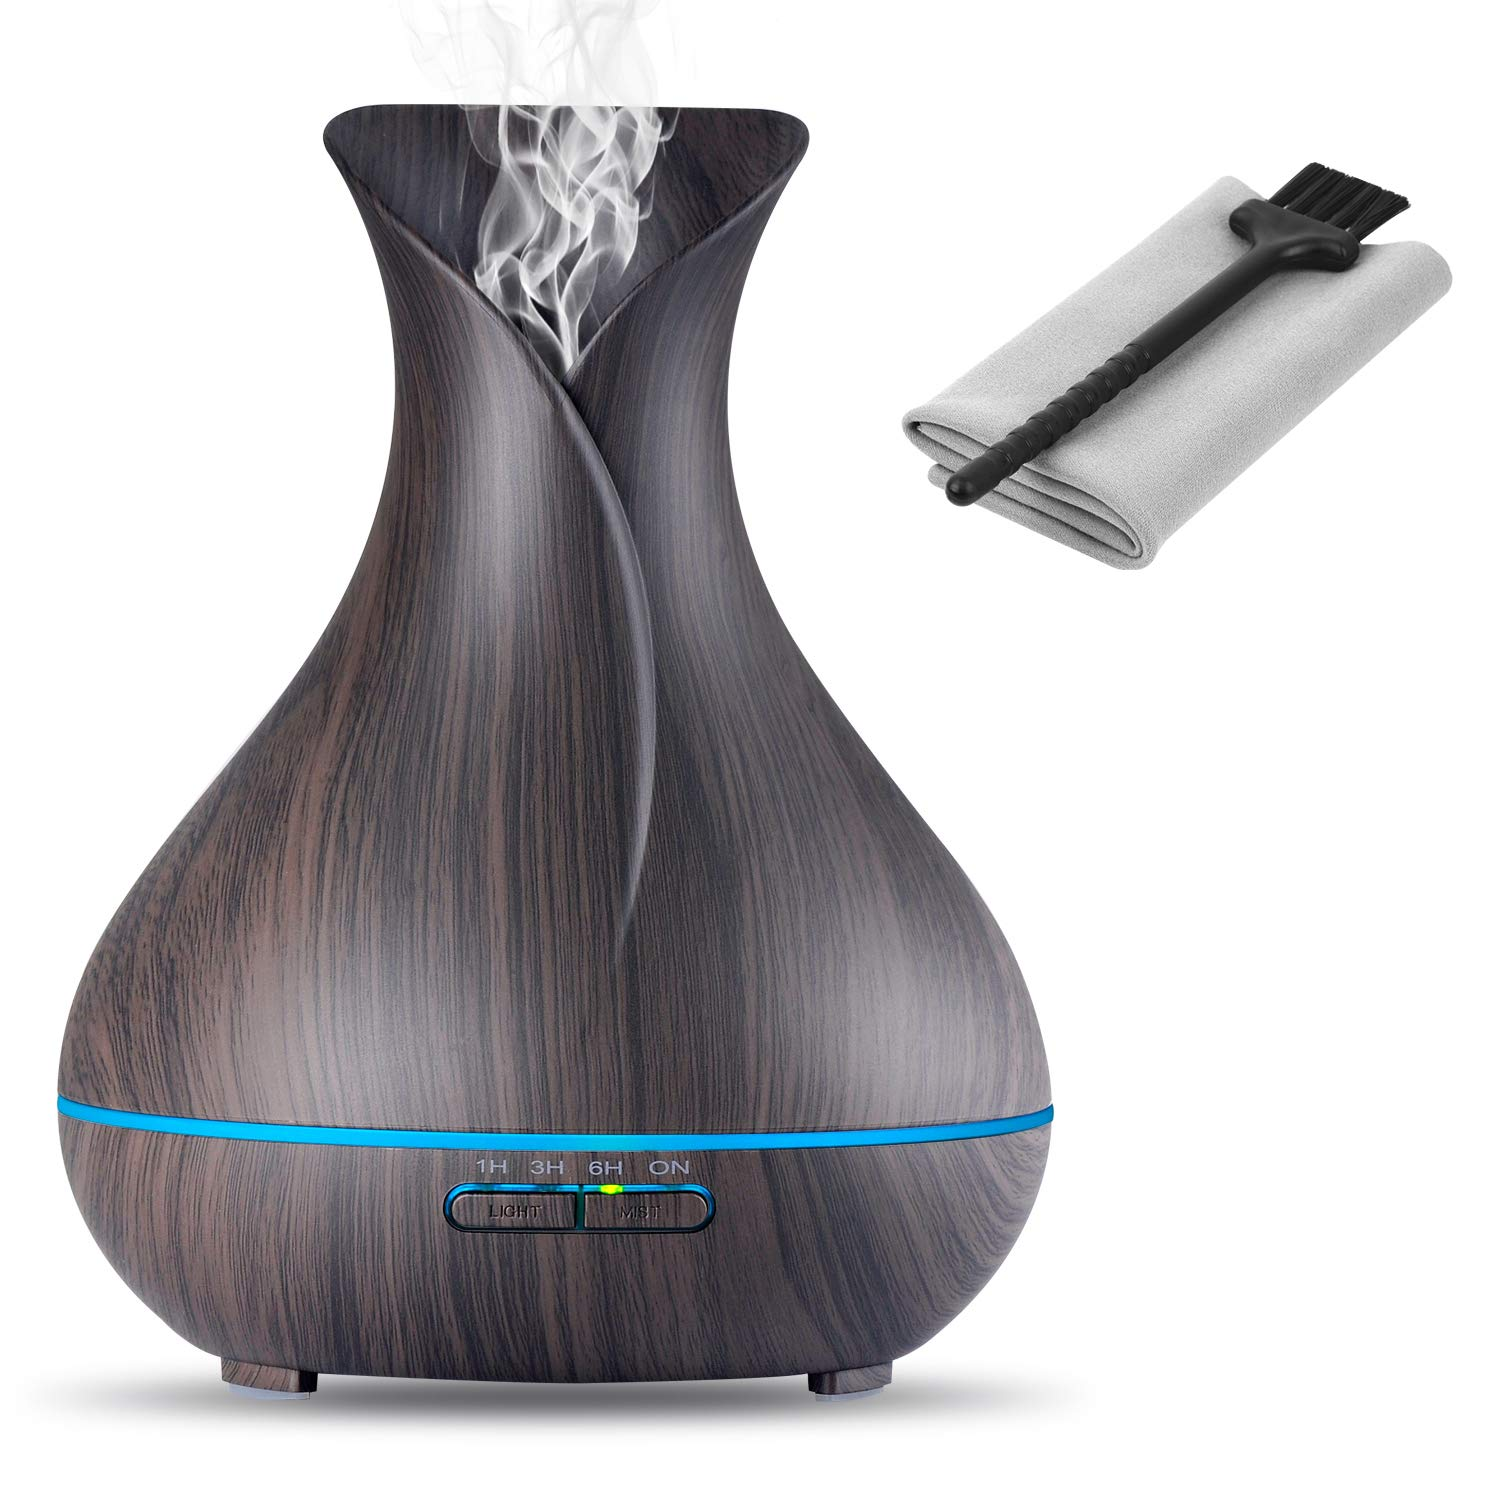 OliveTech Aroma Essential Oil Diffuser, 400ml Ultrasonic Cool Mist Humidifier with Waterless Auto Shut-Off and Cleaning Kit for Home, Yoga, Office, Spa, Bedroom, Baby Room - Wood Grain